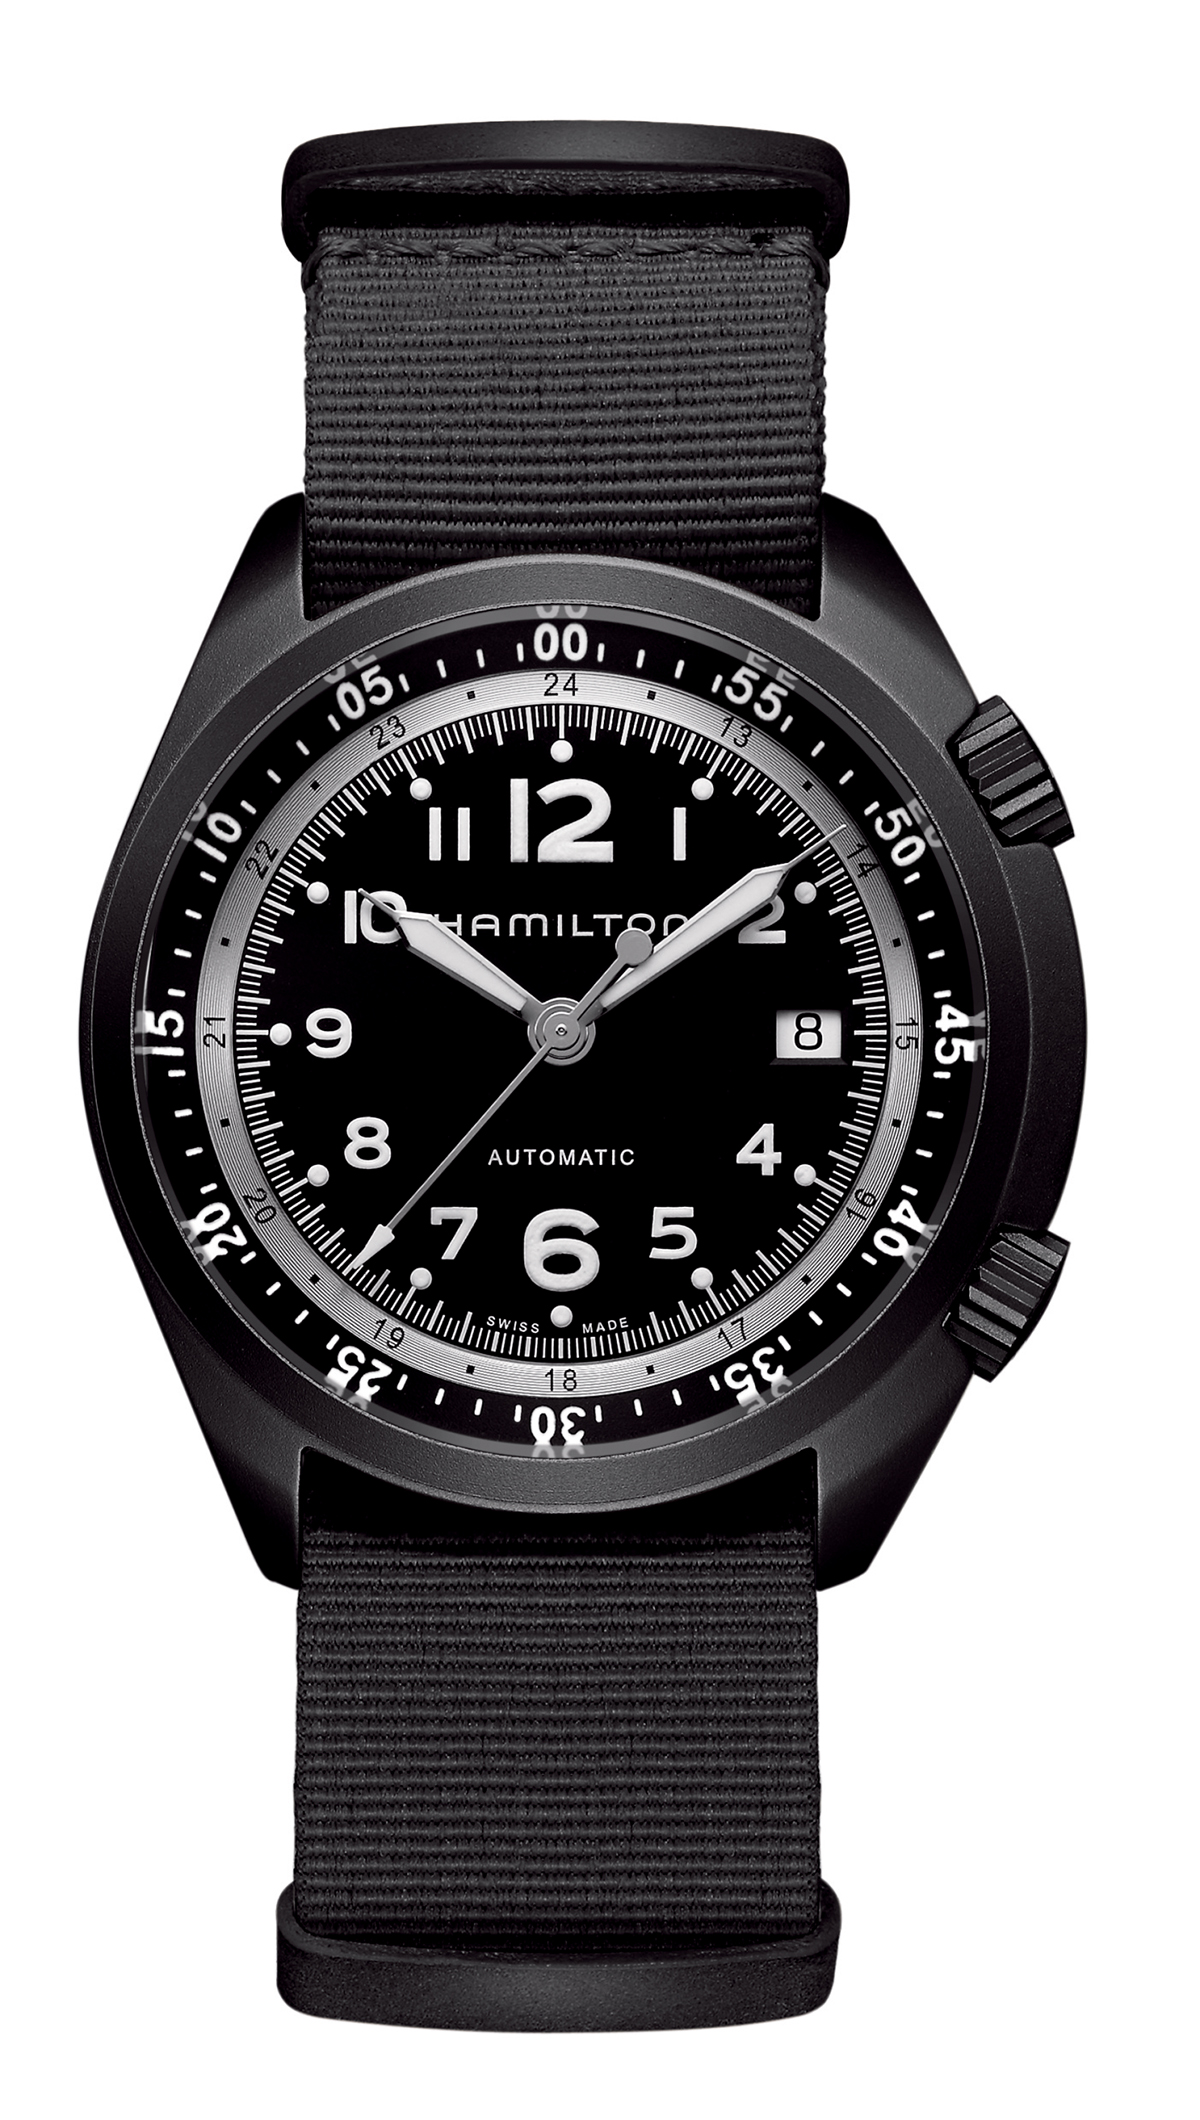 Khaki Pilot Pioneer Aluminum, black version